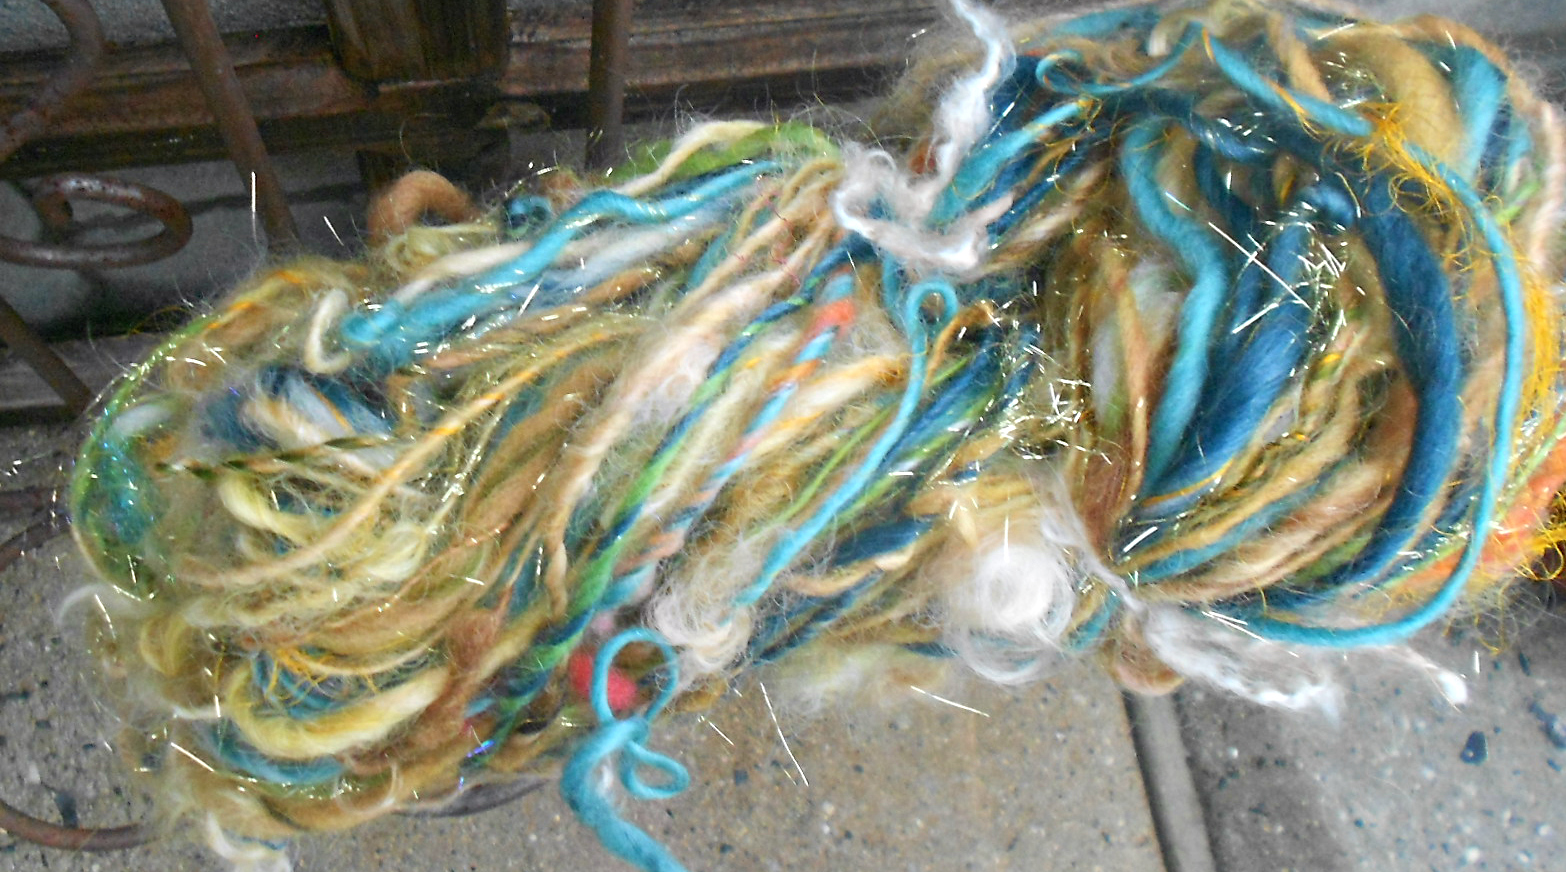 The whole skein before it was divided into individual ritual cords.  Each cord is different so they're all listed separately.